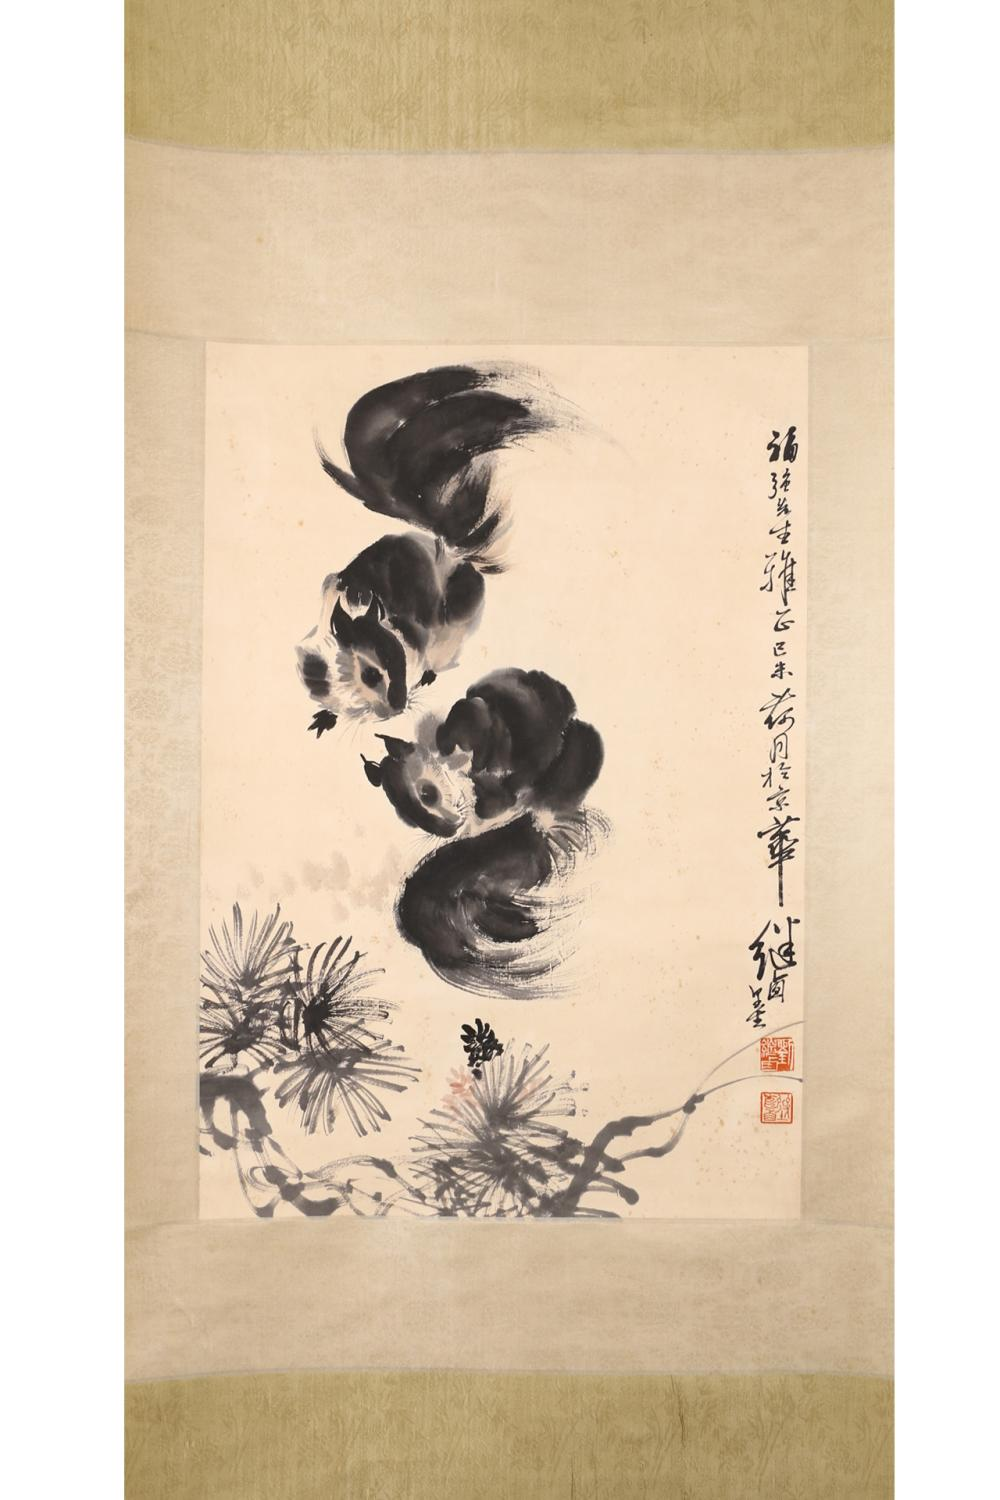 CHINESE INK AND COLOR PAINTING OF TWO SQUIRRELS